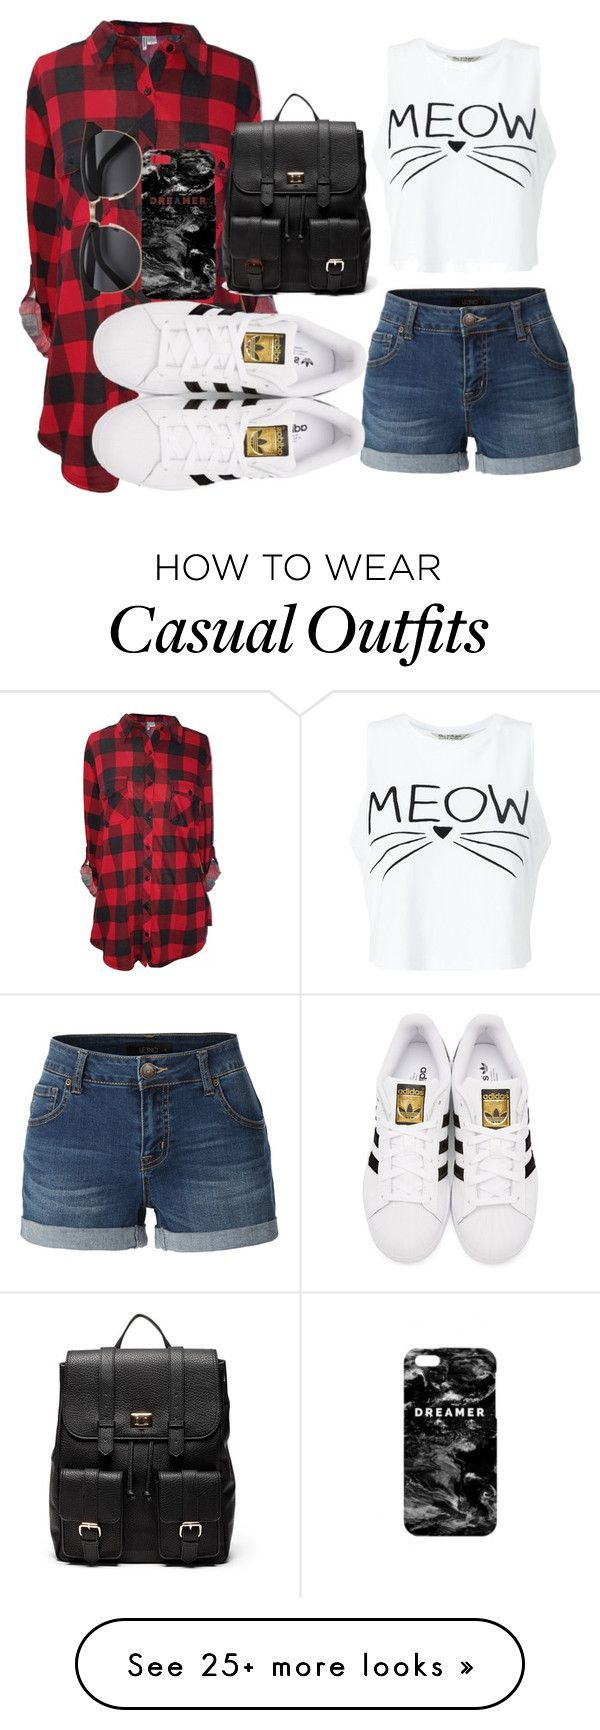 Lazy high schooler starter pack a.k.a trash by osimmonds on Polyvore featuring adidas* Patagonia* TravelSmith and The North Face Que es elliee?. ..... .   When your spying on a girl you like but she sees you??..  ...